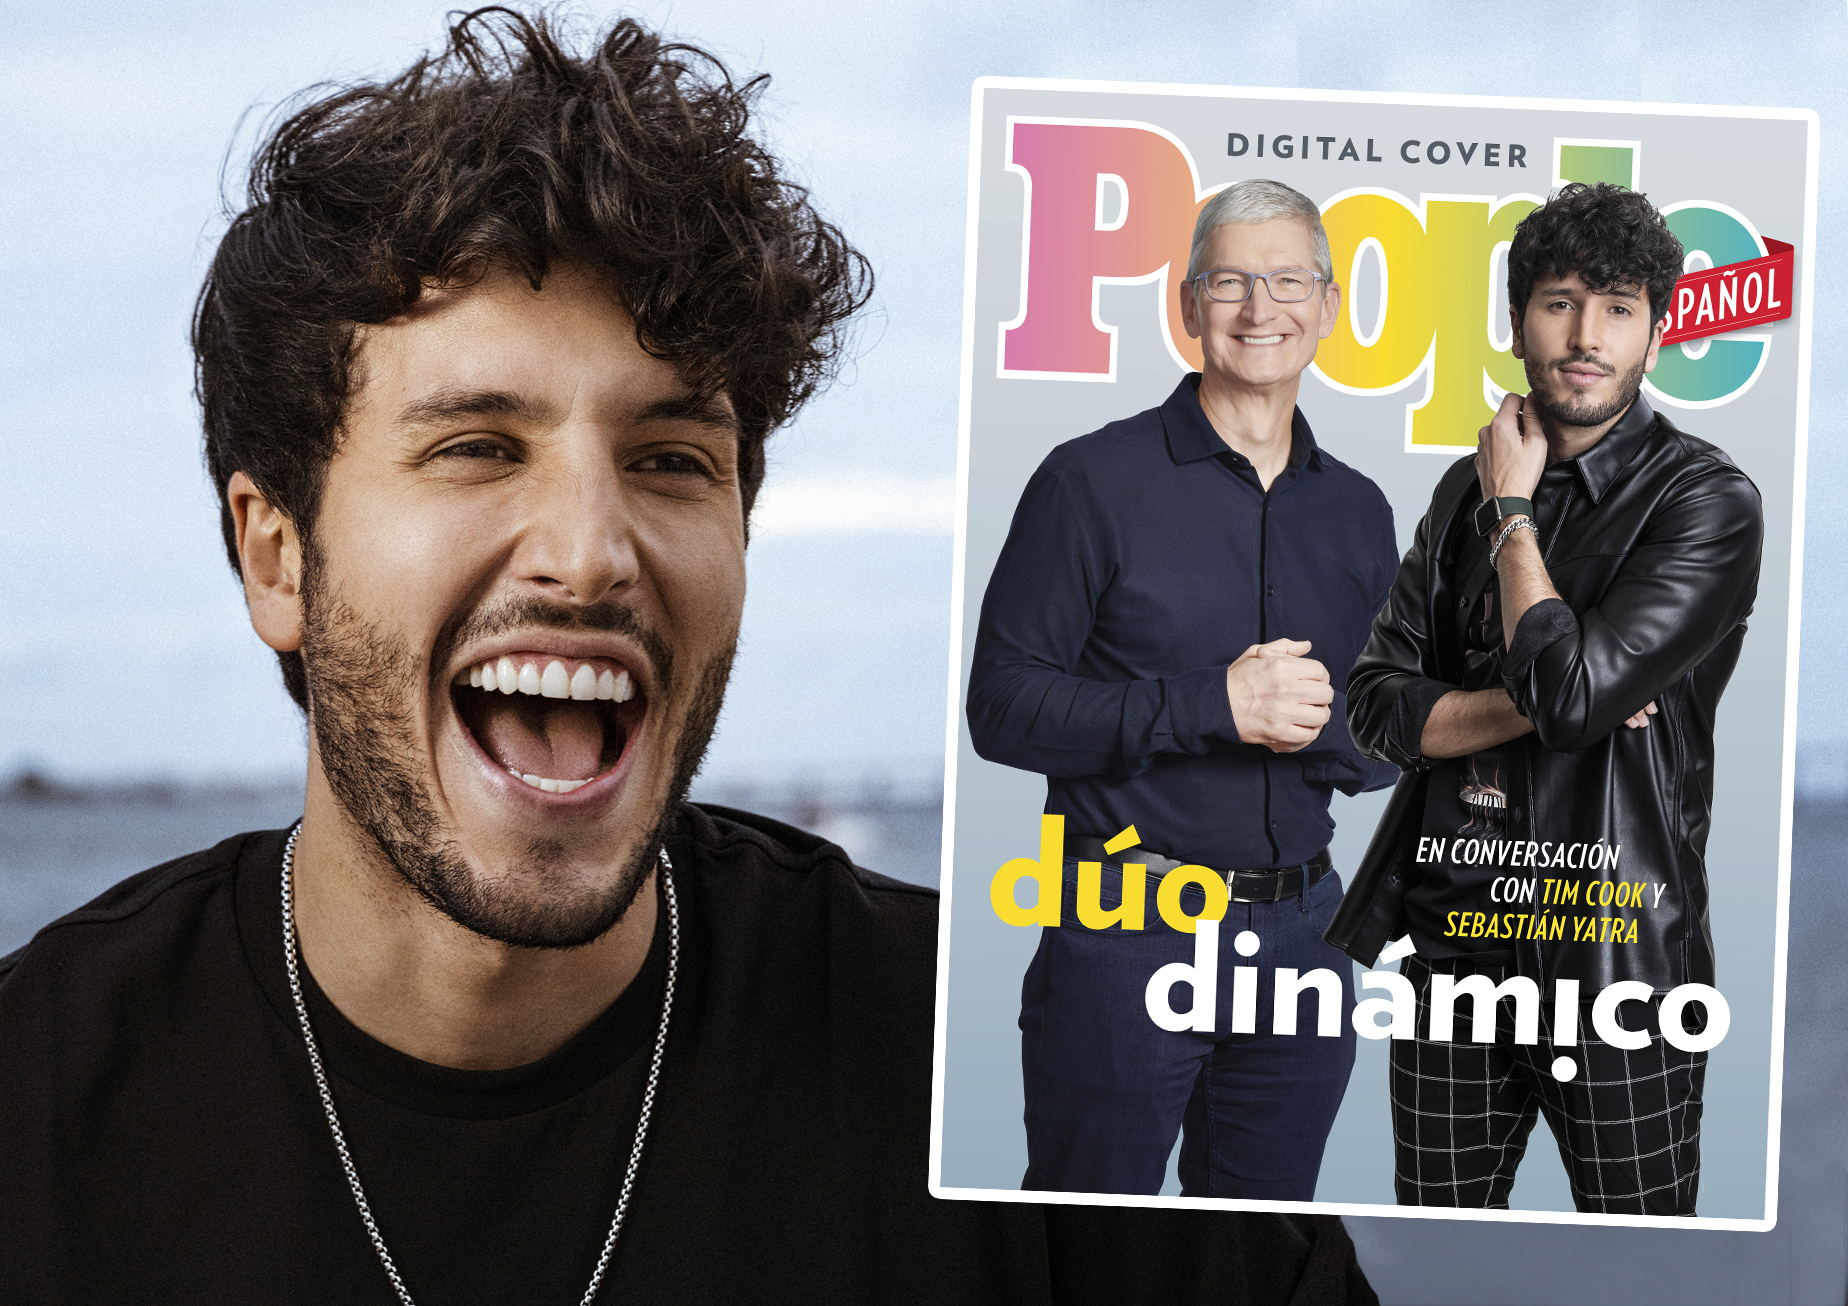 Sebastian Yatra y Tim Cook promo home page (DO NOT REUSE)